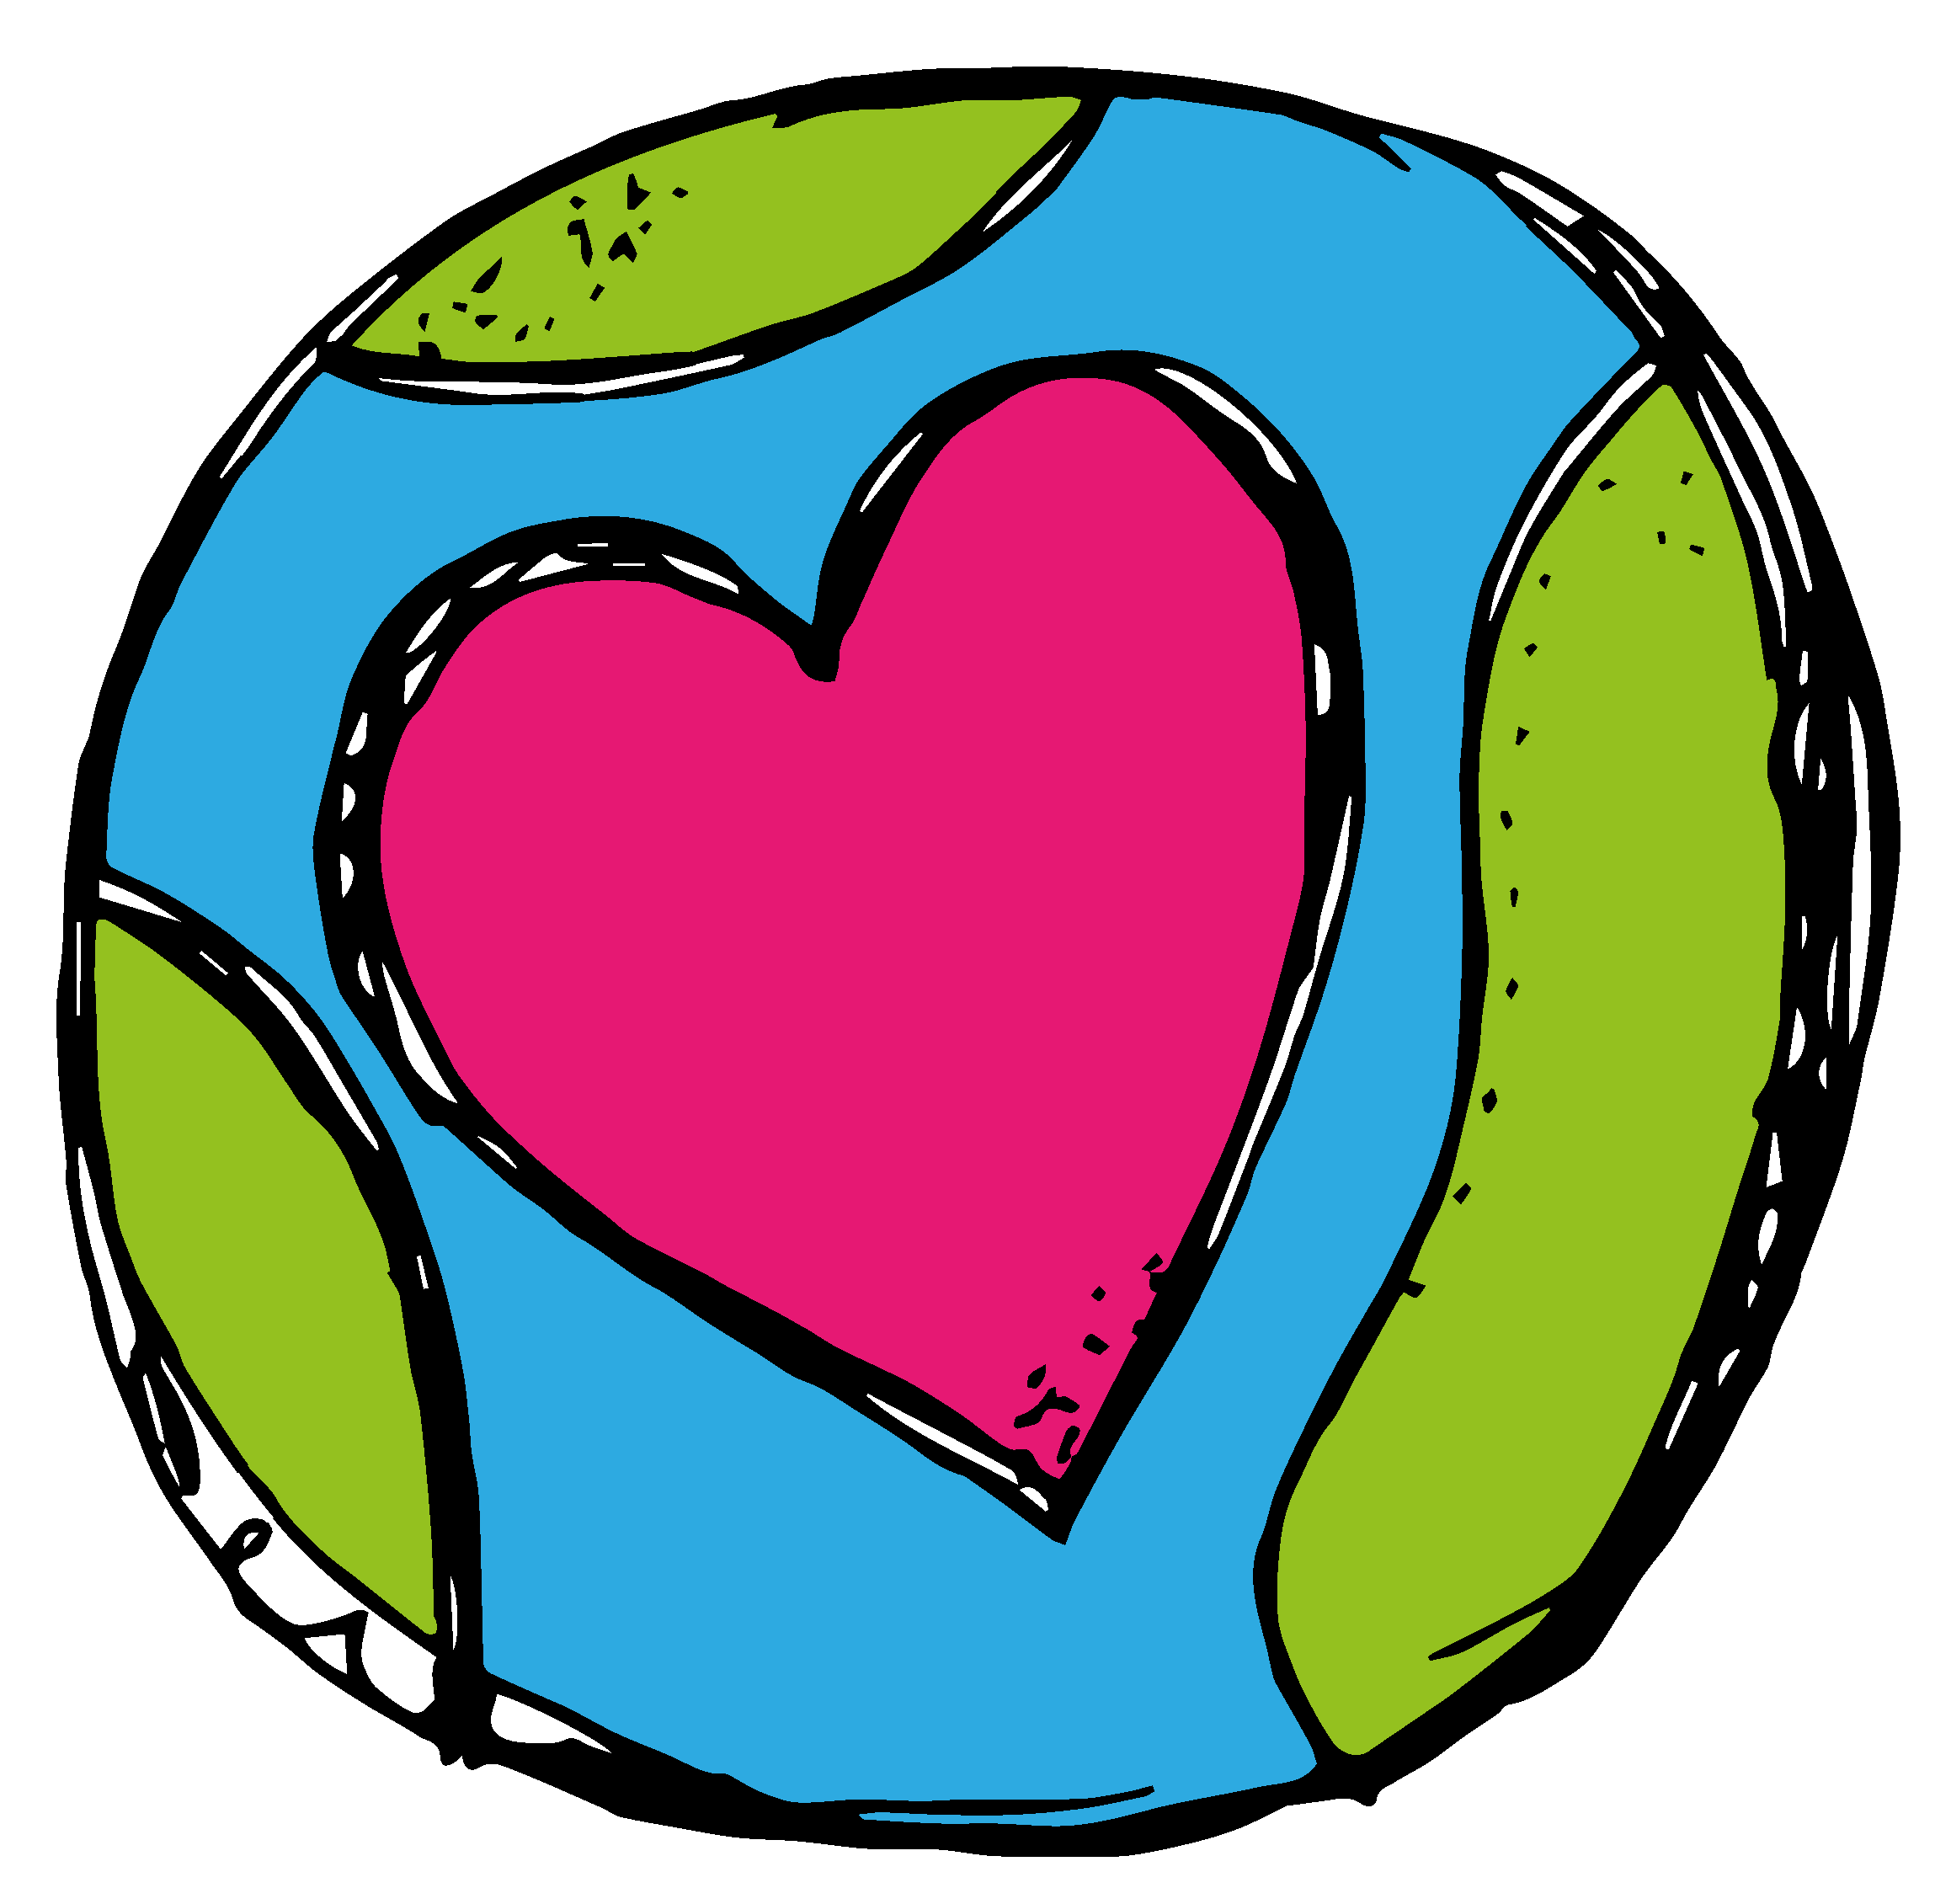 Earth and heart clipart clip free download Super Earth Day 2014: text, images, music, video | Glogster EDU ... clip free download